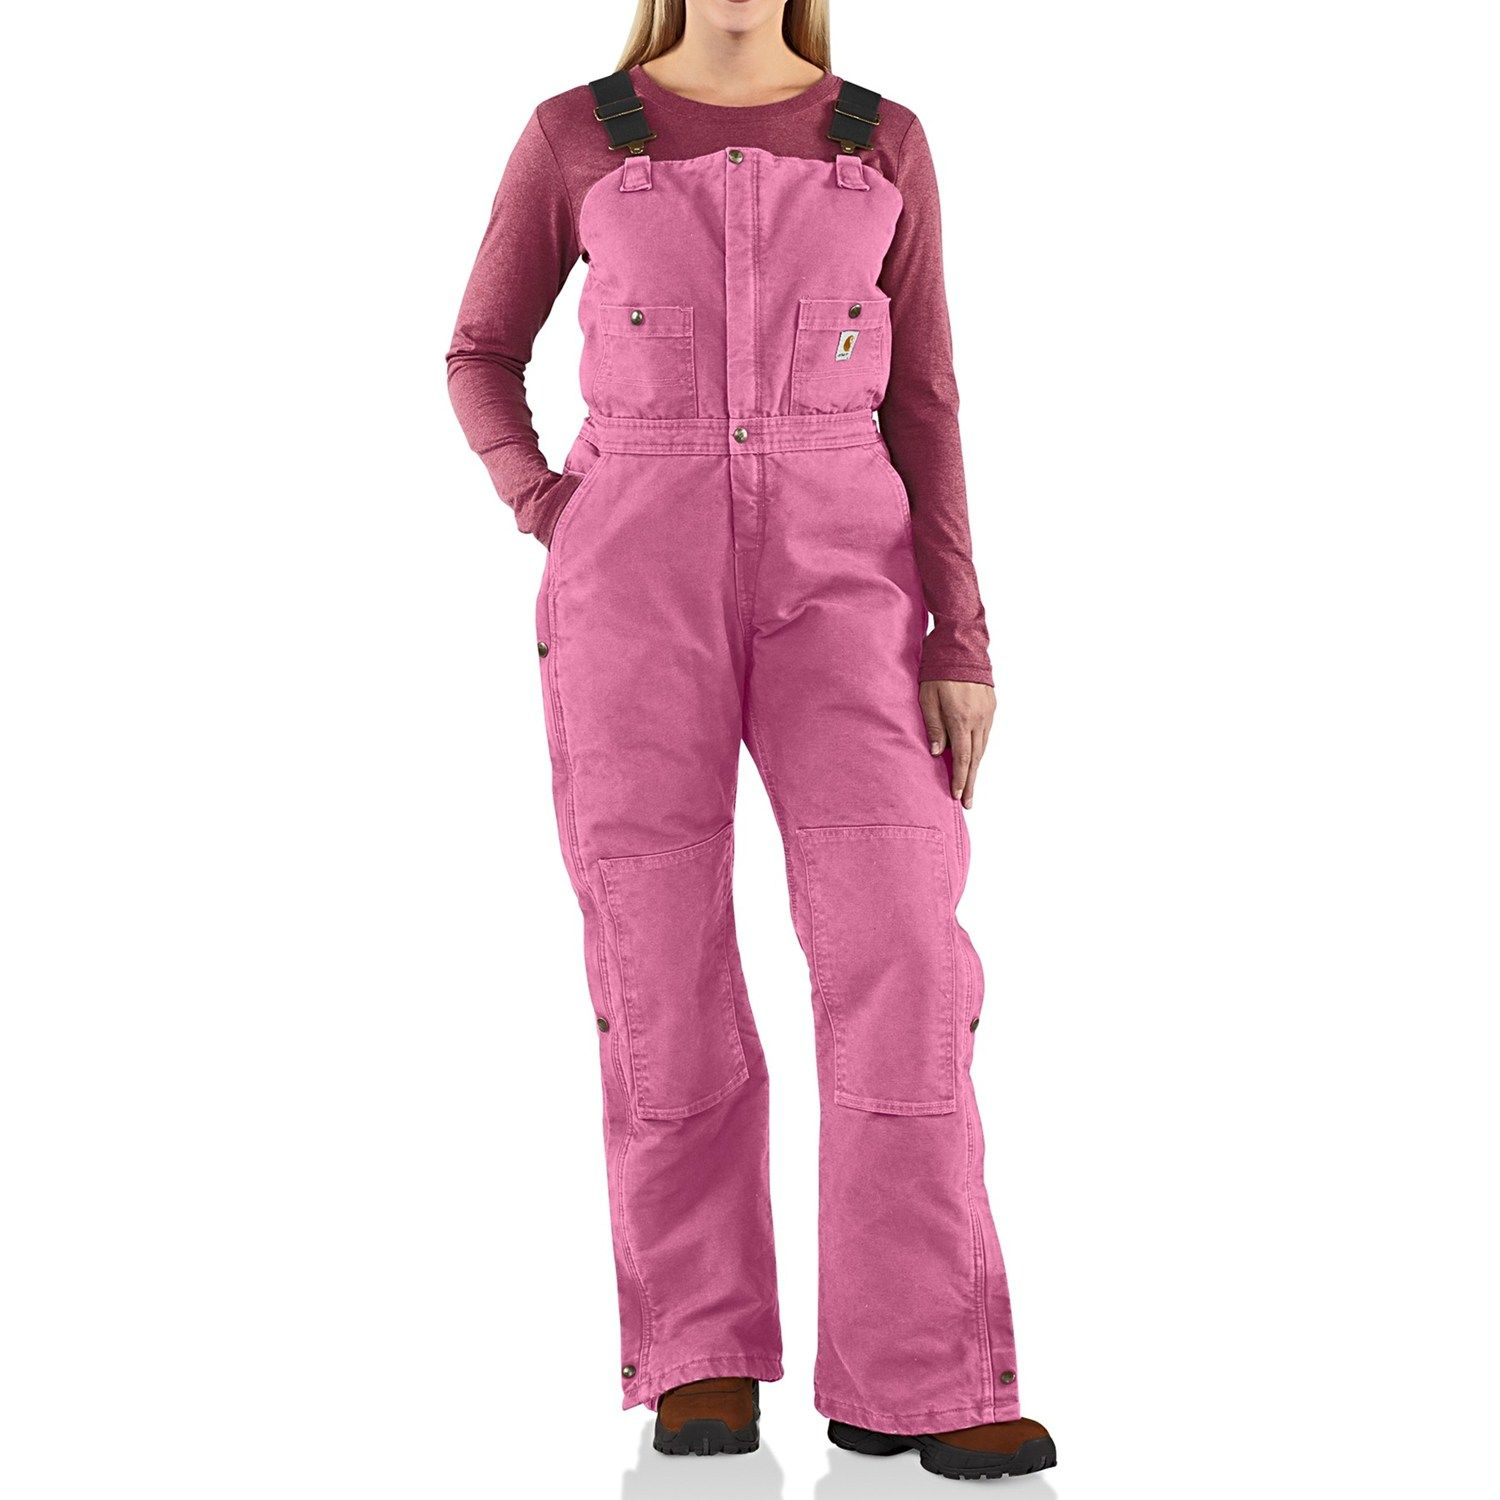 carhartt sandstone bib overalls insulated for women on insulated overalls id=43369